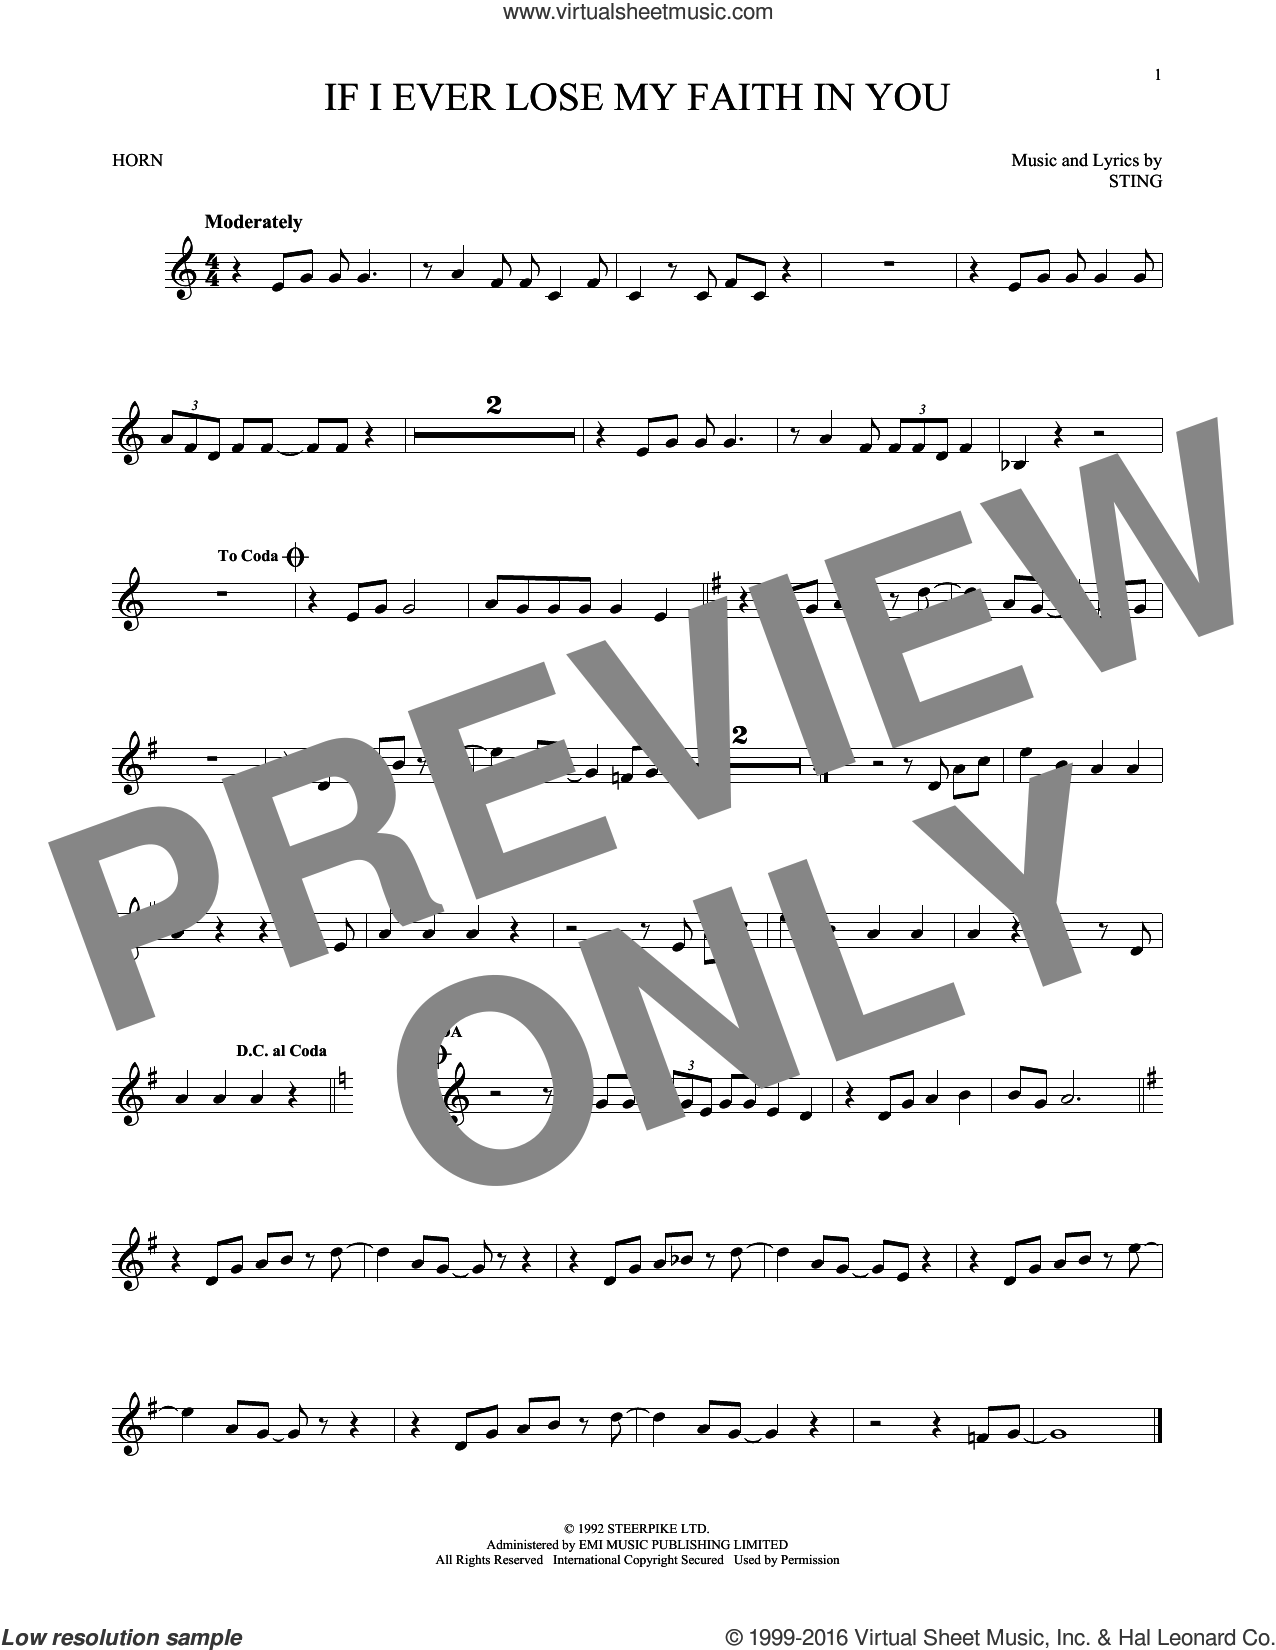 If I Ever Lose My Faith In You sheet music for horn solo by Sting. Score Image Preview.